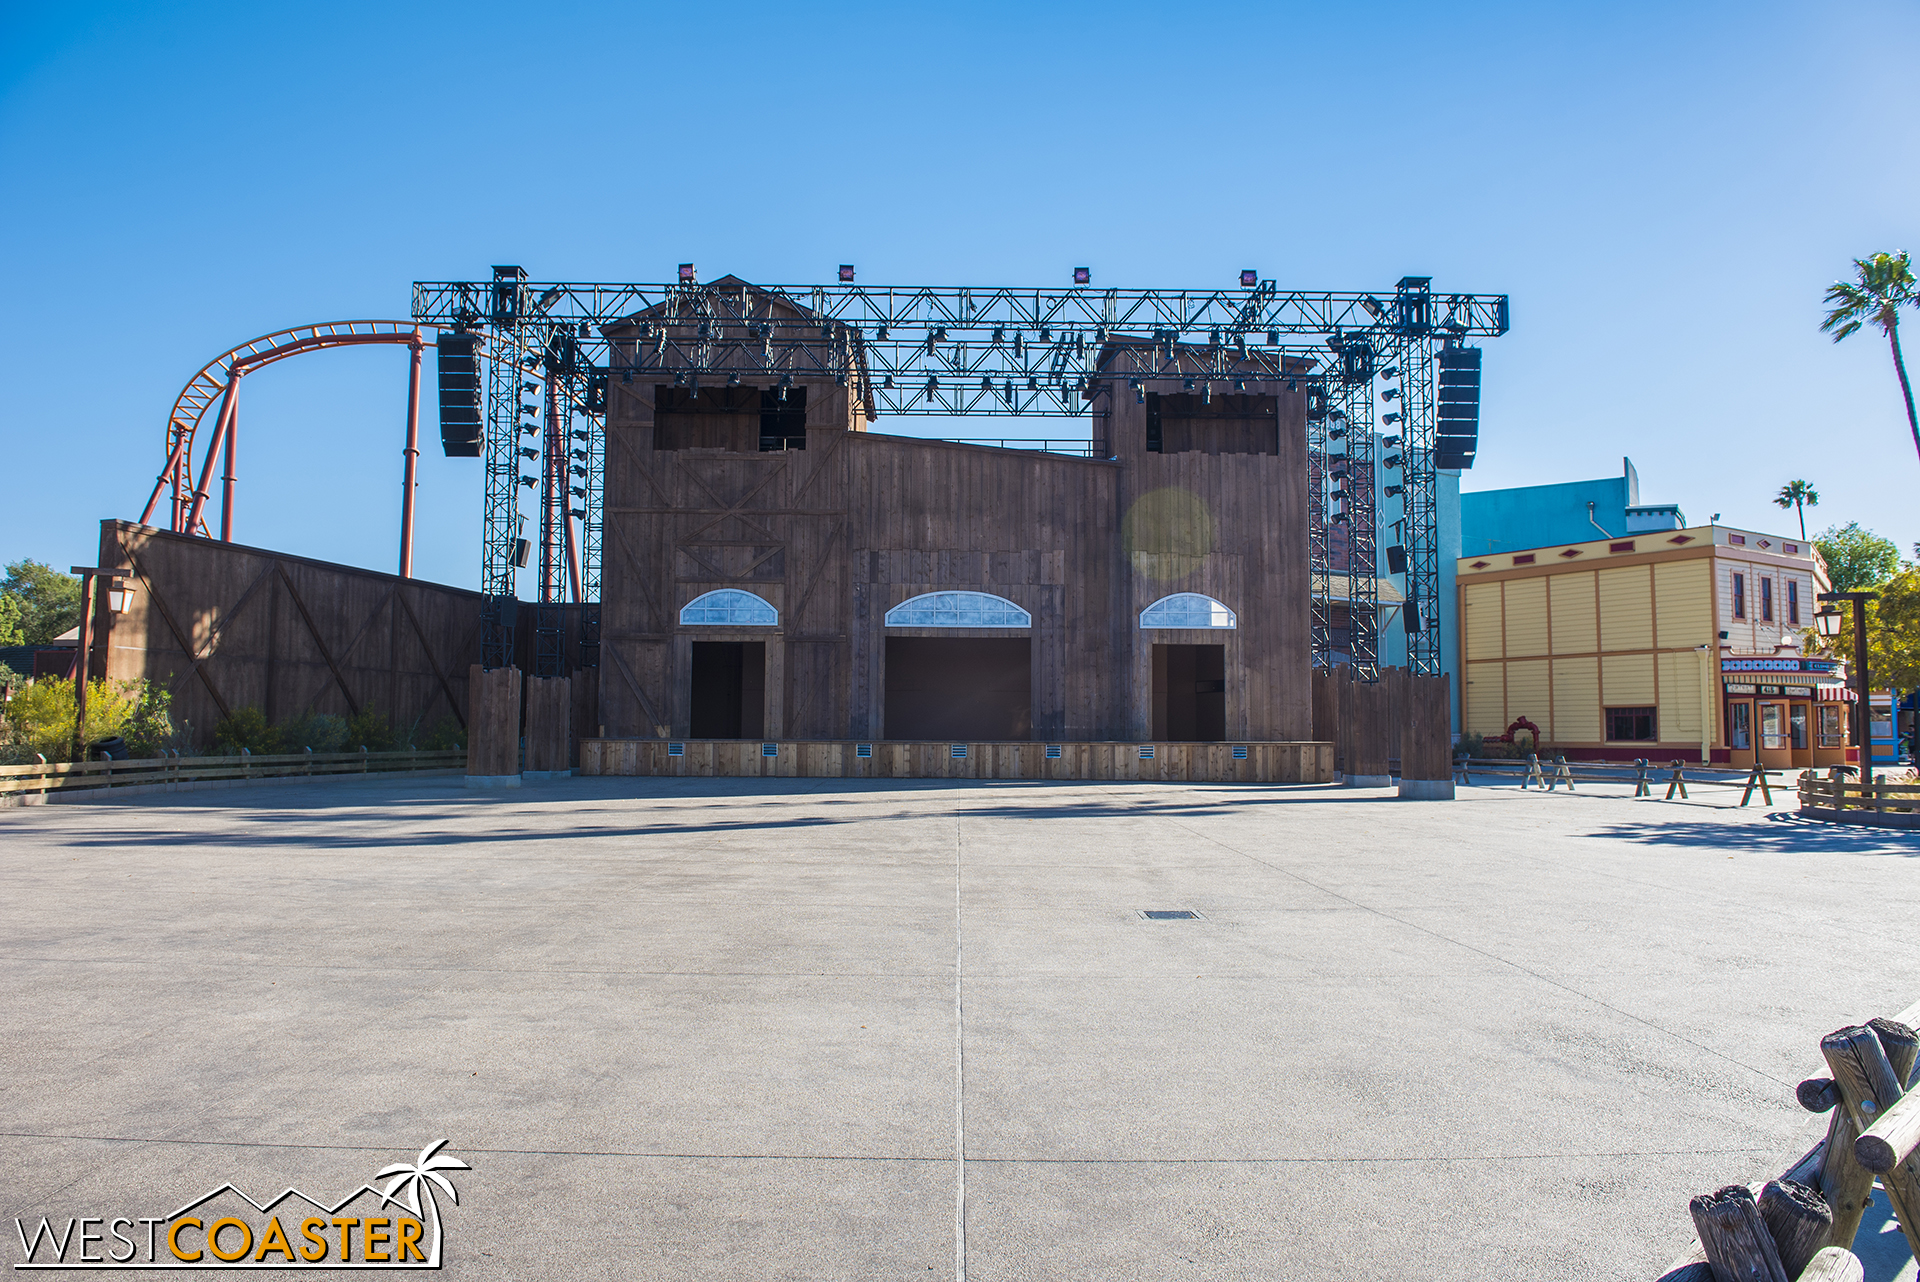 This is what the Calico Stage looks like when no show is going on.  The actual stage itself is removable and can clear a lot of room in front of the facade.